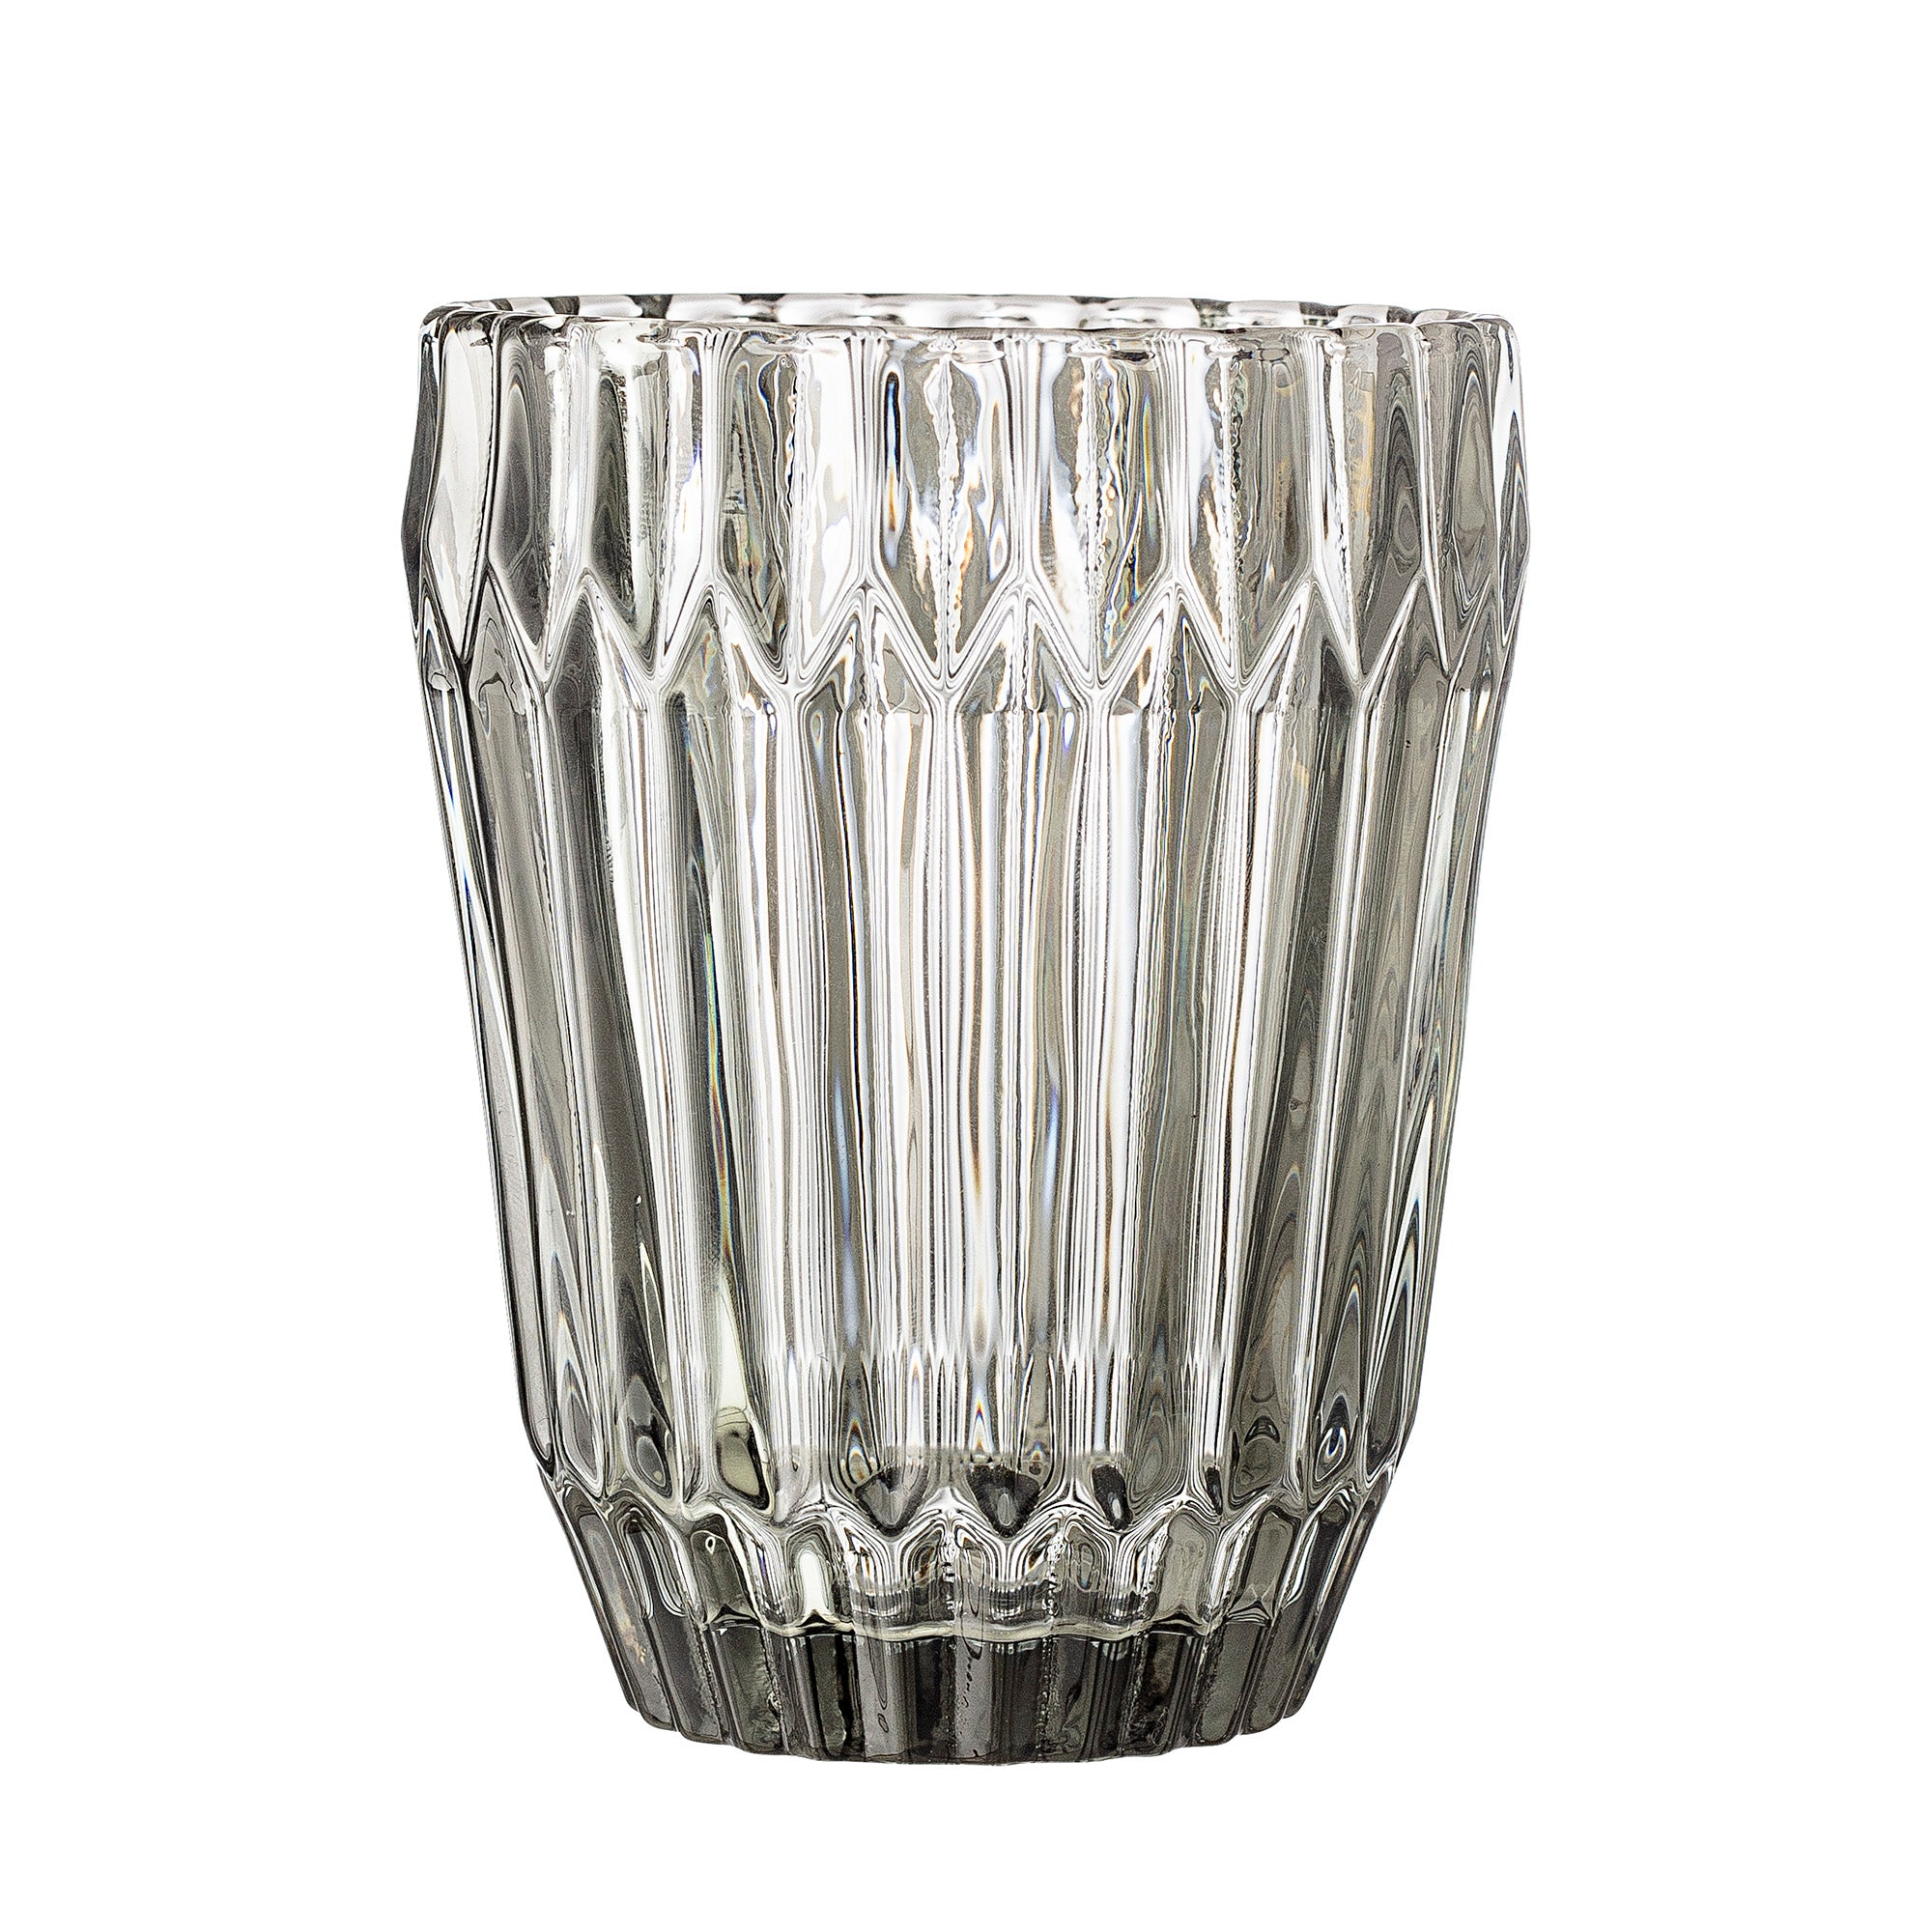 Grey Drinking Glasses Cheaper Than Retail Price Buy Clothing Accessories And Lifestyle Products For Women Men